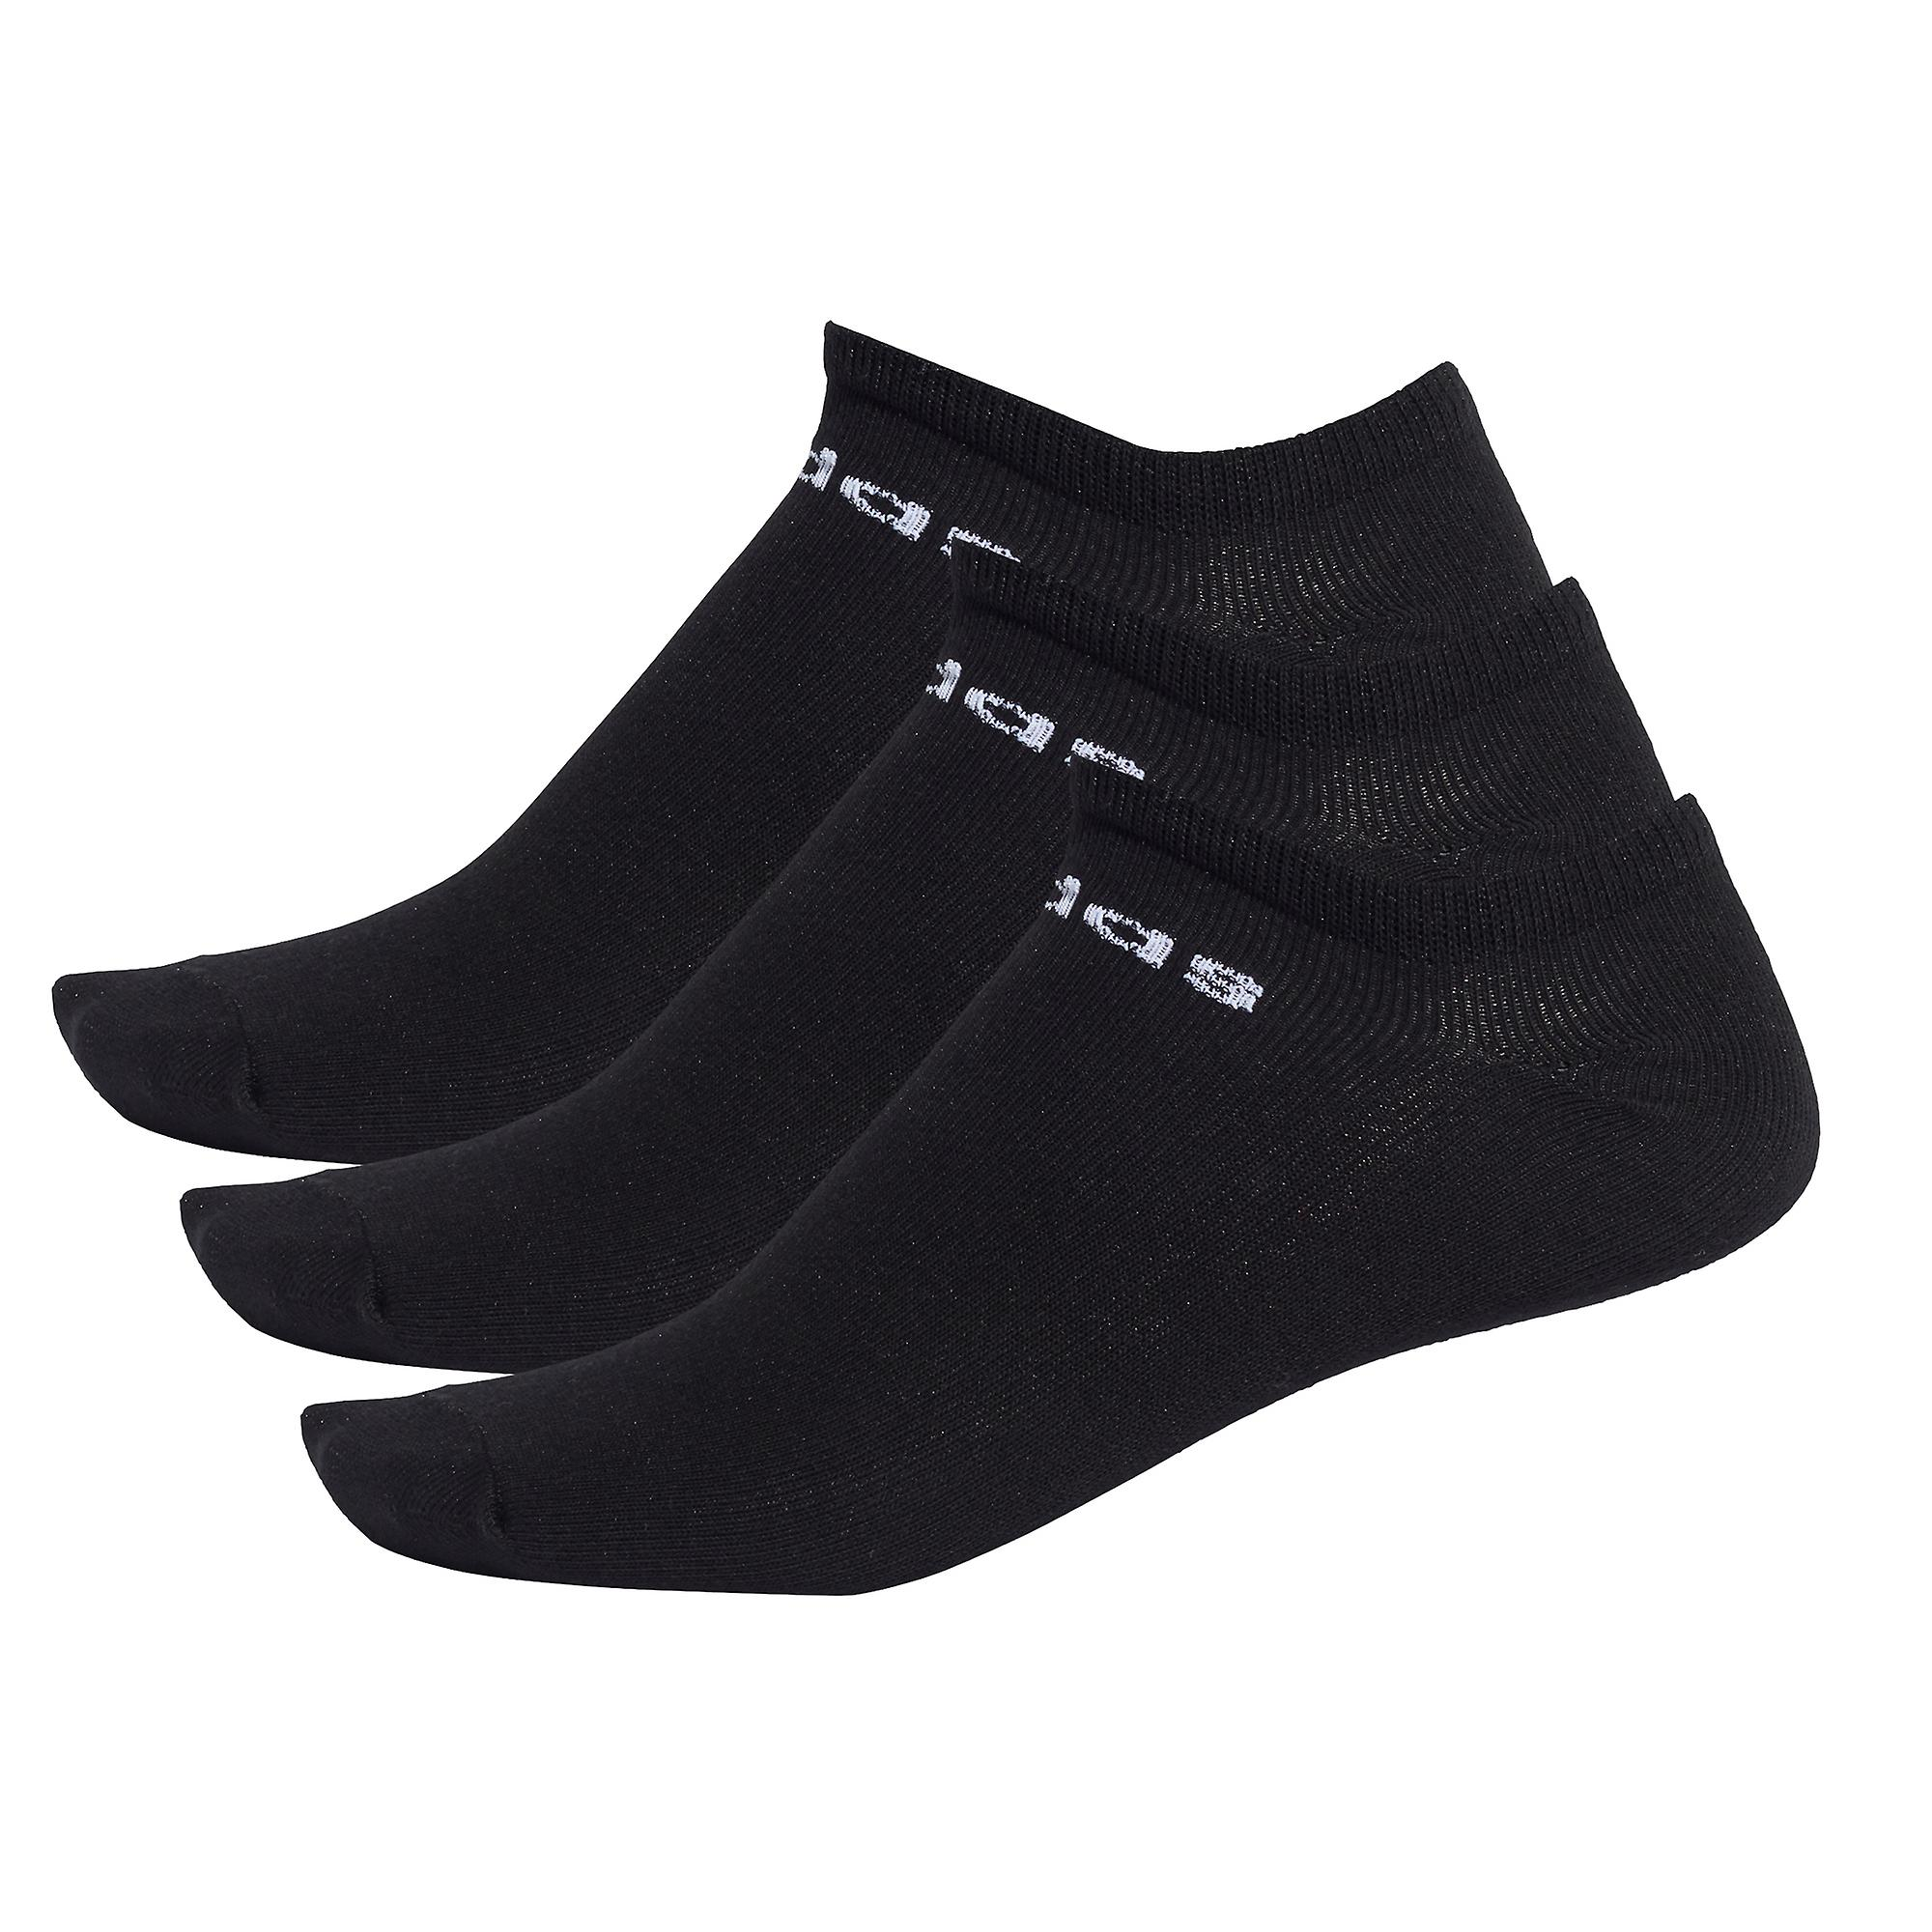 adidas Low Cut Ankle Exercise Fitness Sport Socks Black (3 Pack)